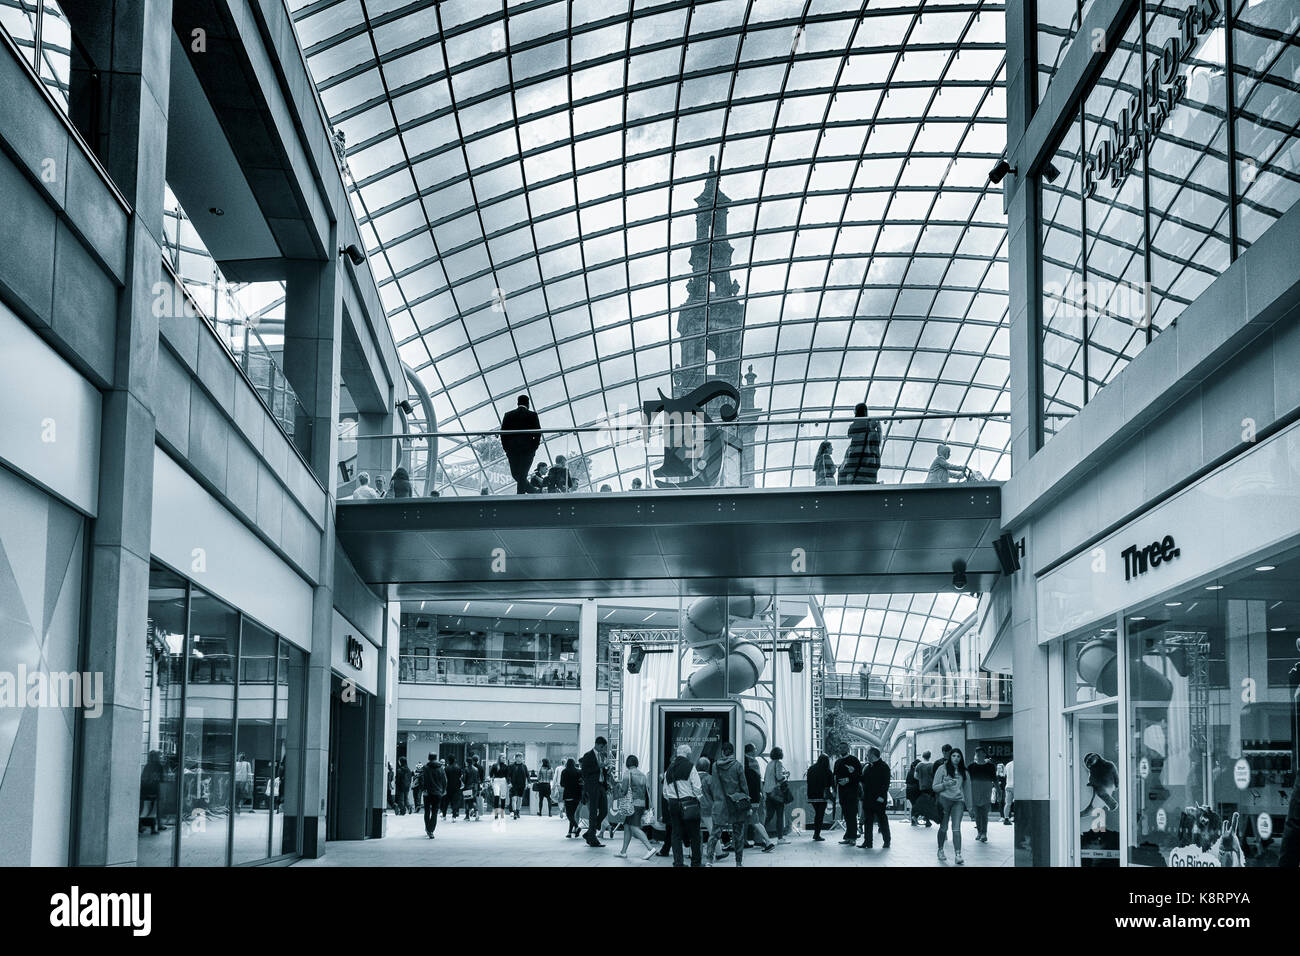 Trinity Leeds shopping centre. Leeds, Yorkshire, UK - Stock Image